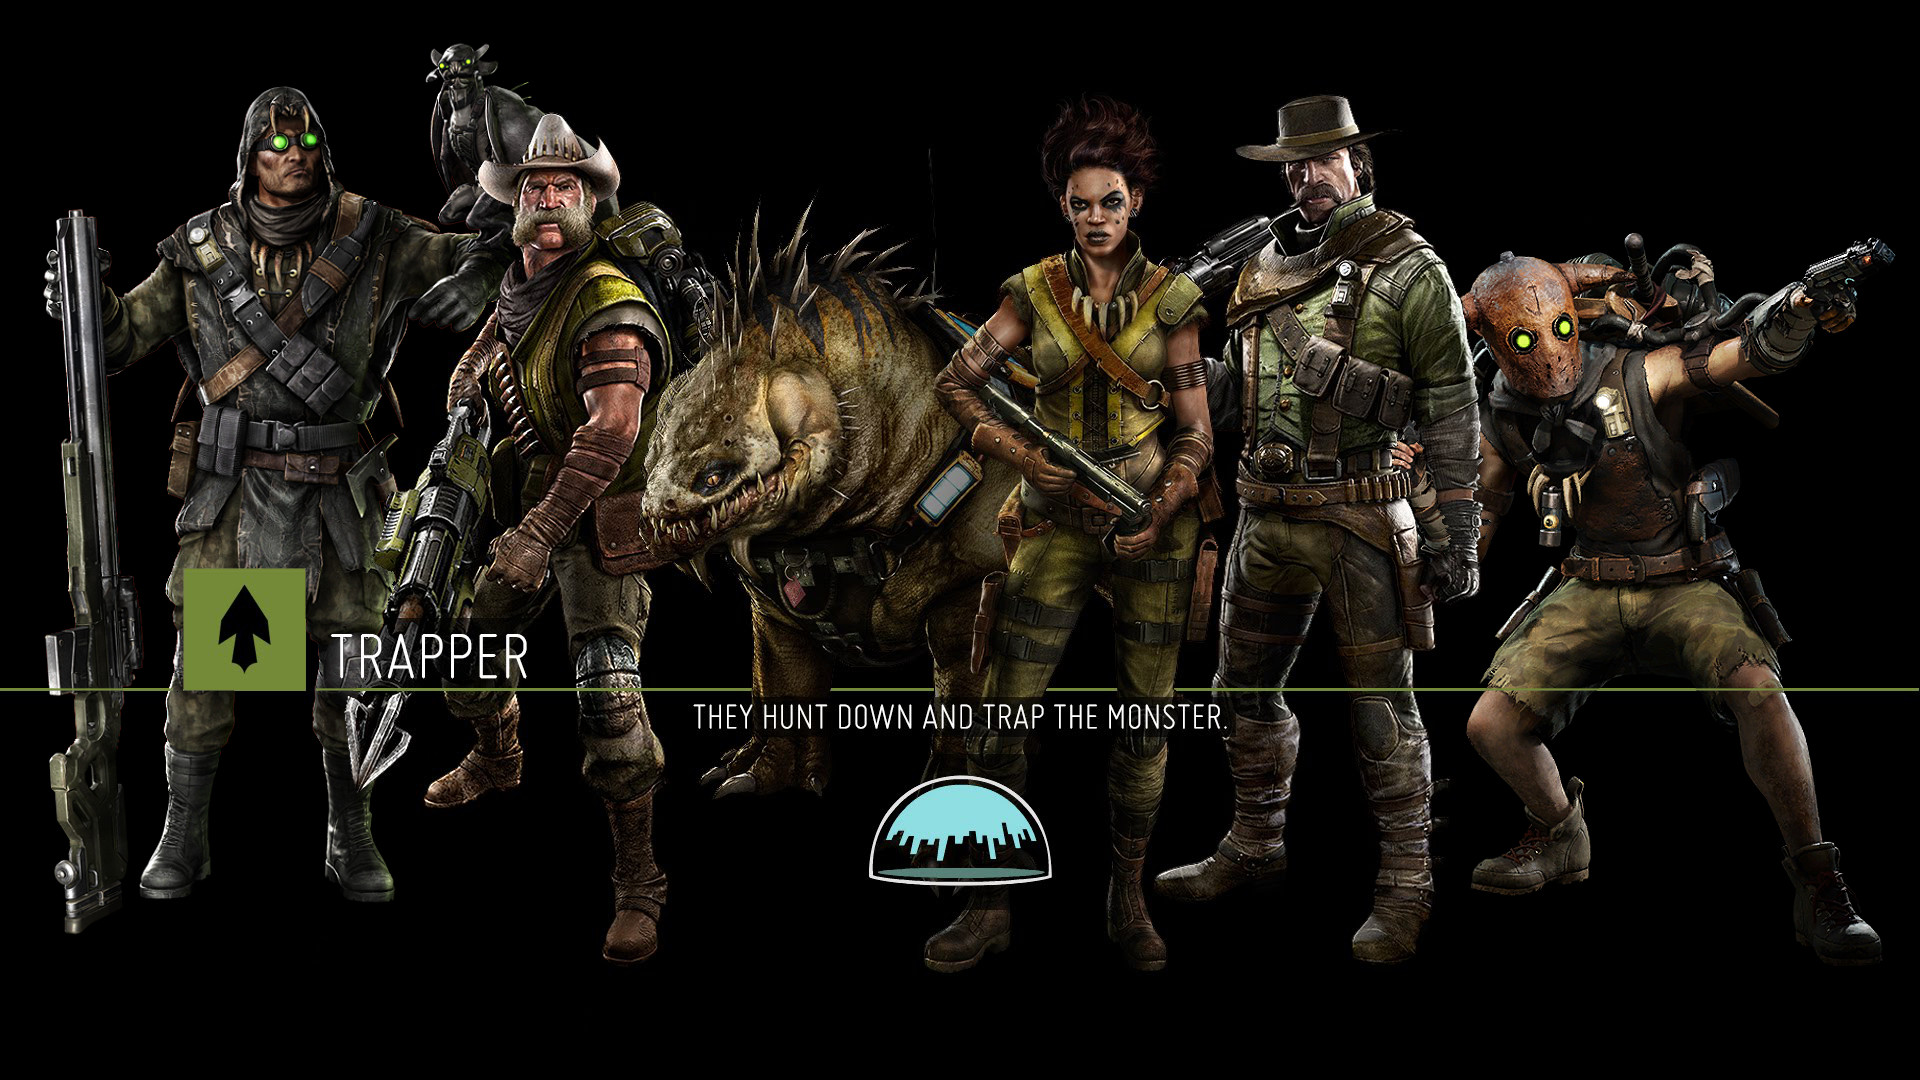 Evolve Trappers Wallpaper.png1.94 MB